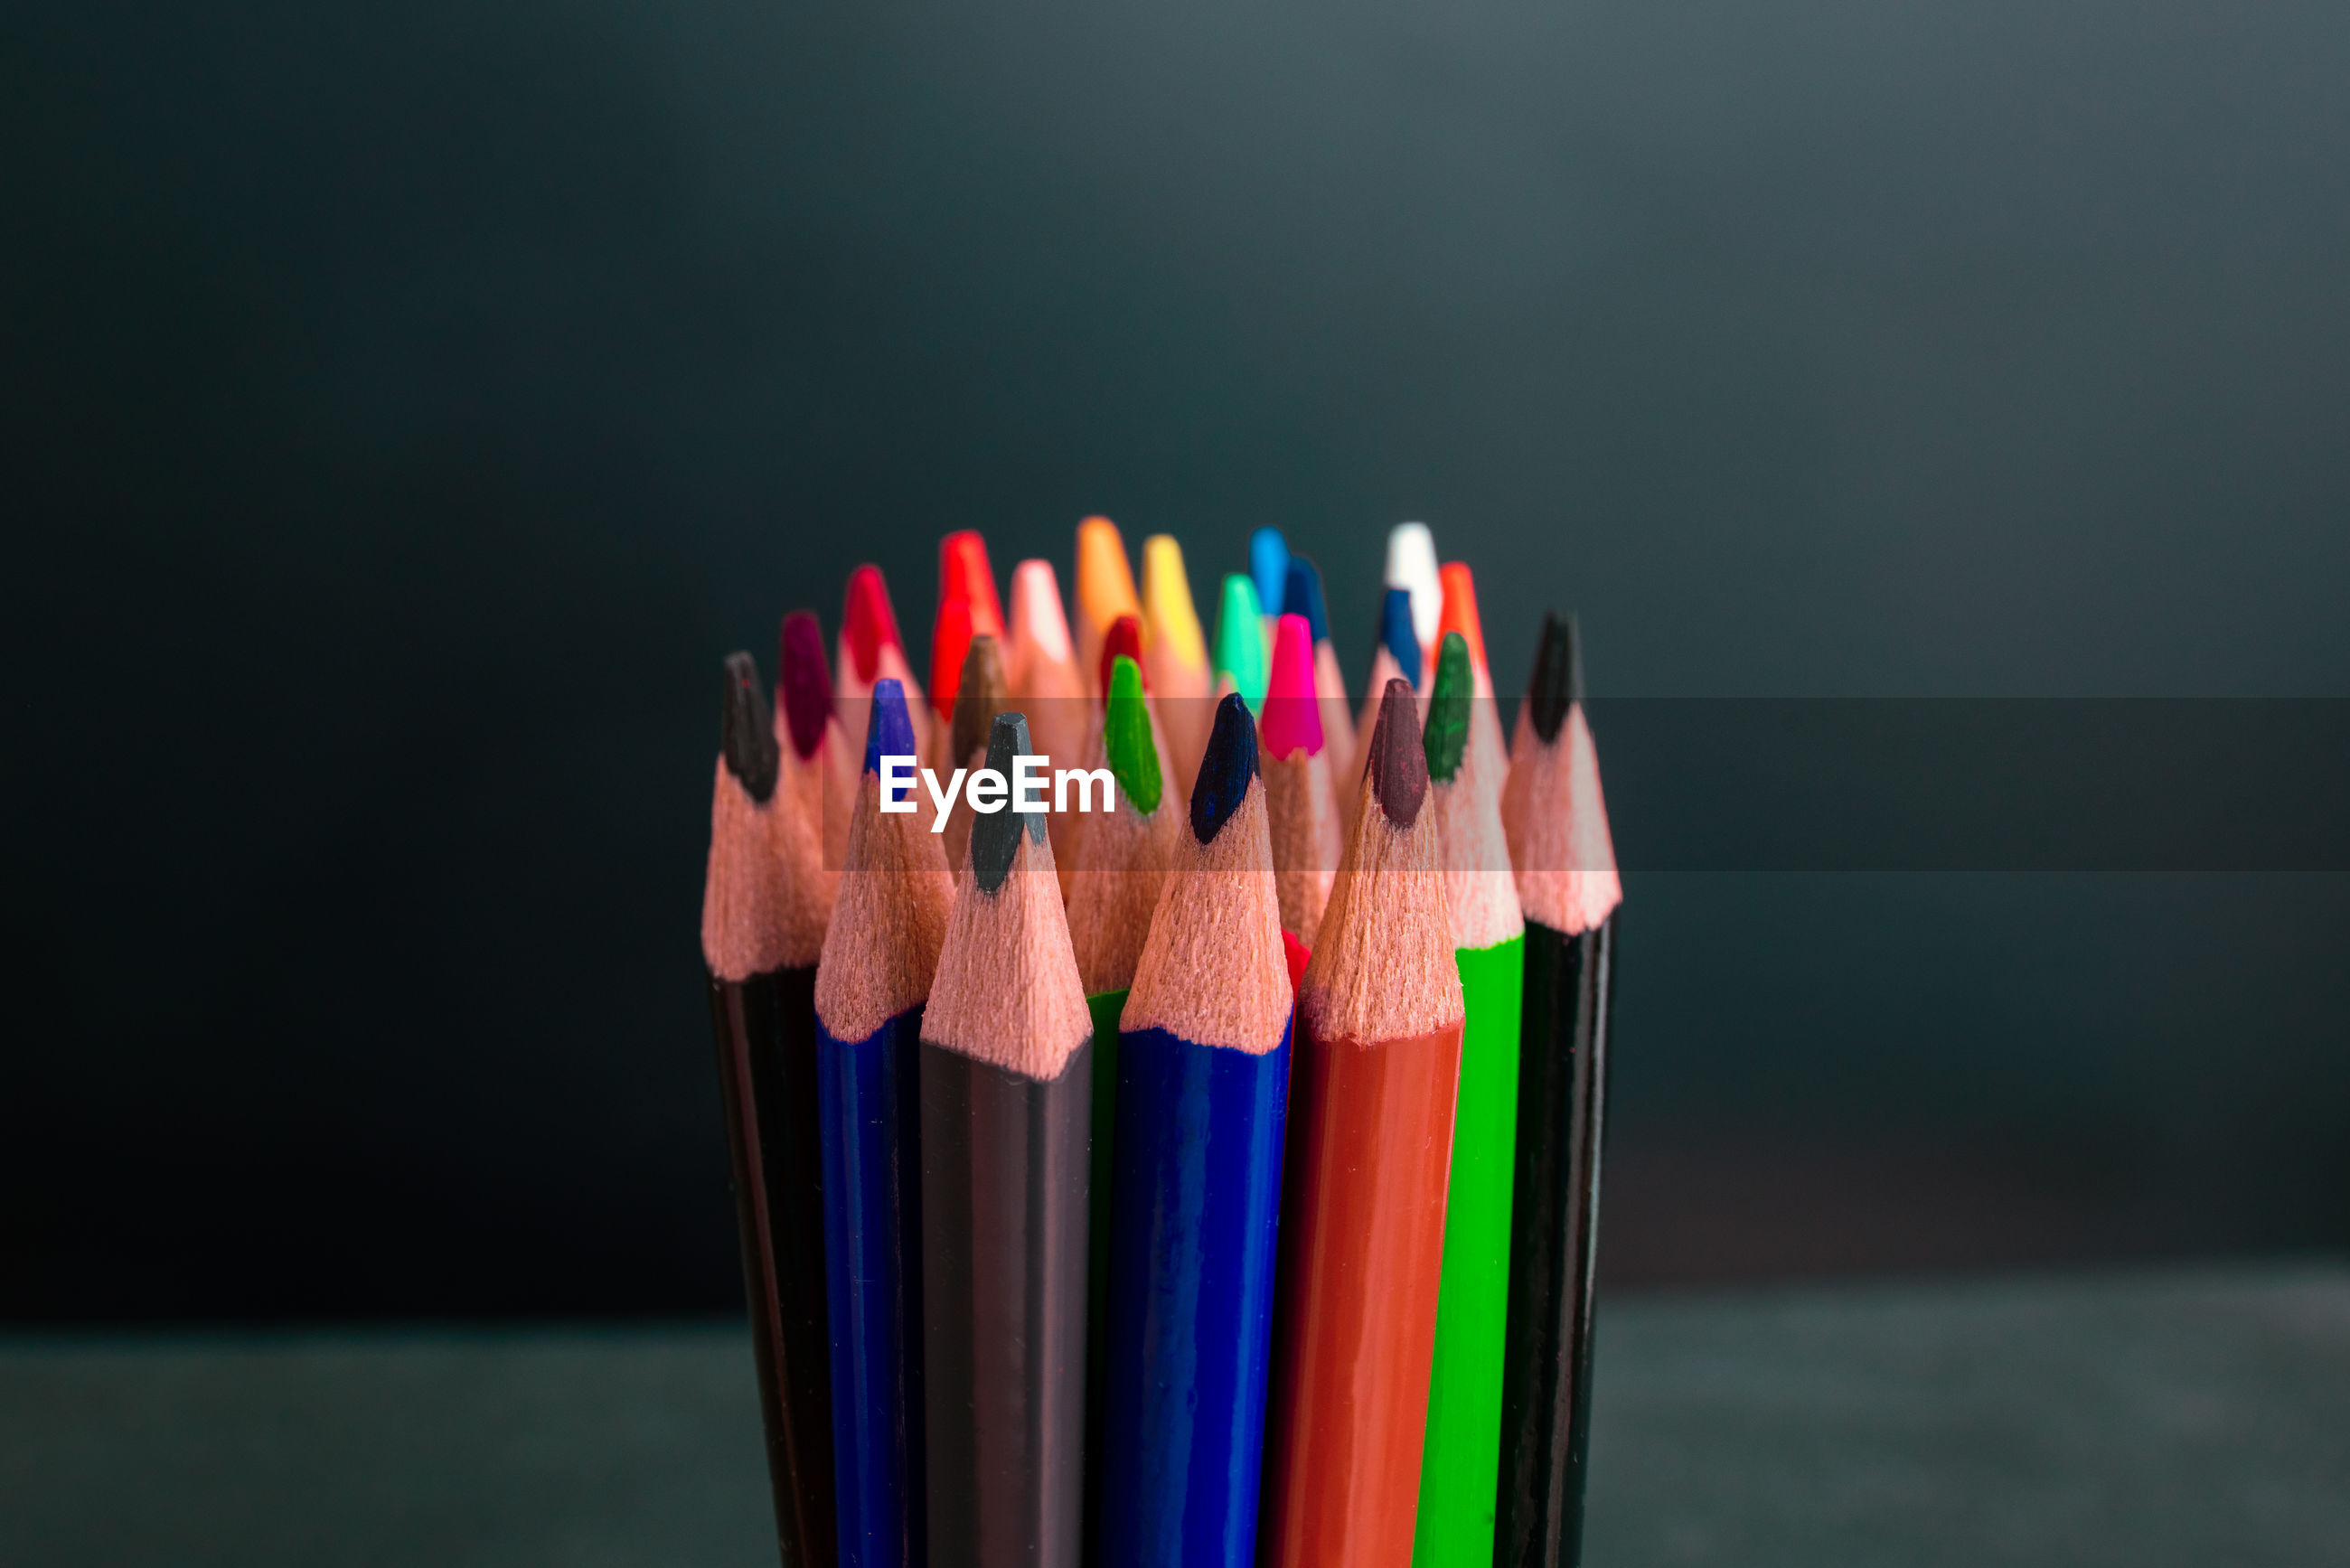 Close-up of multi colored pencils on table against black background